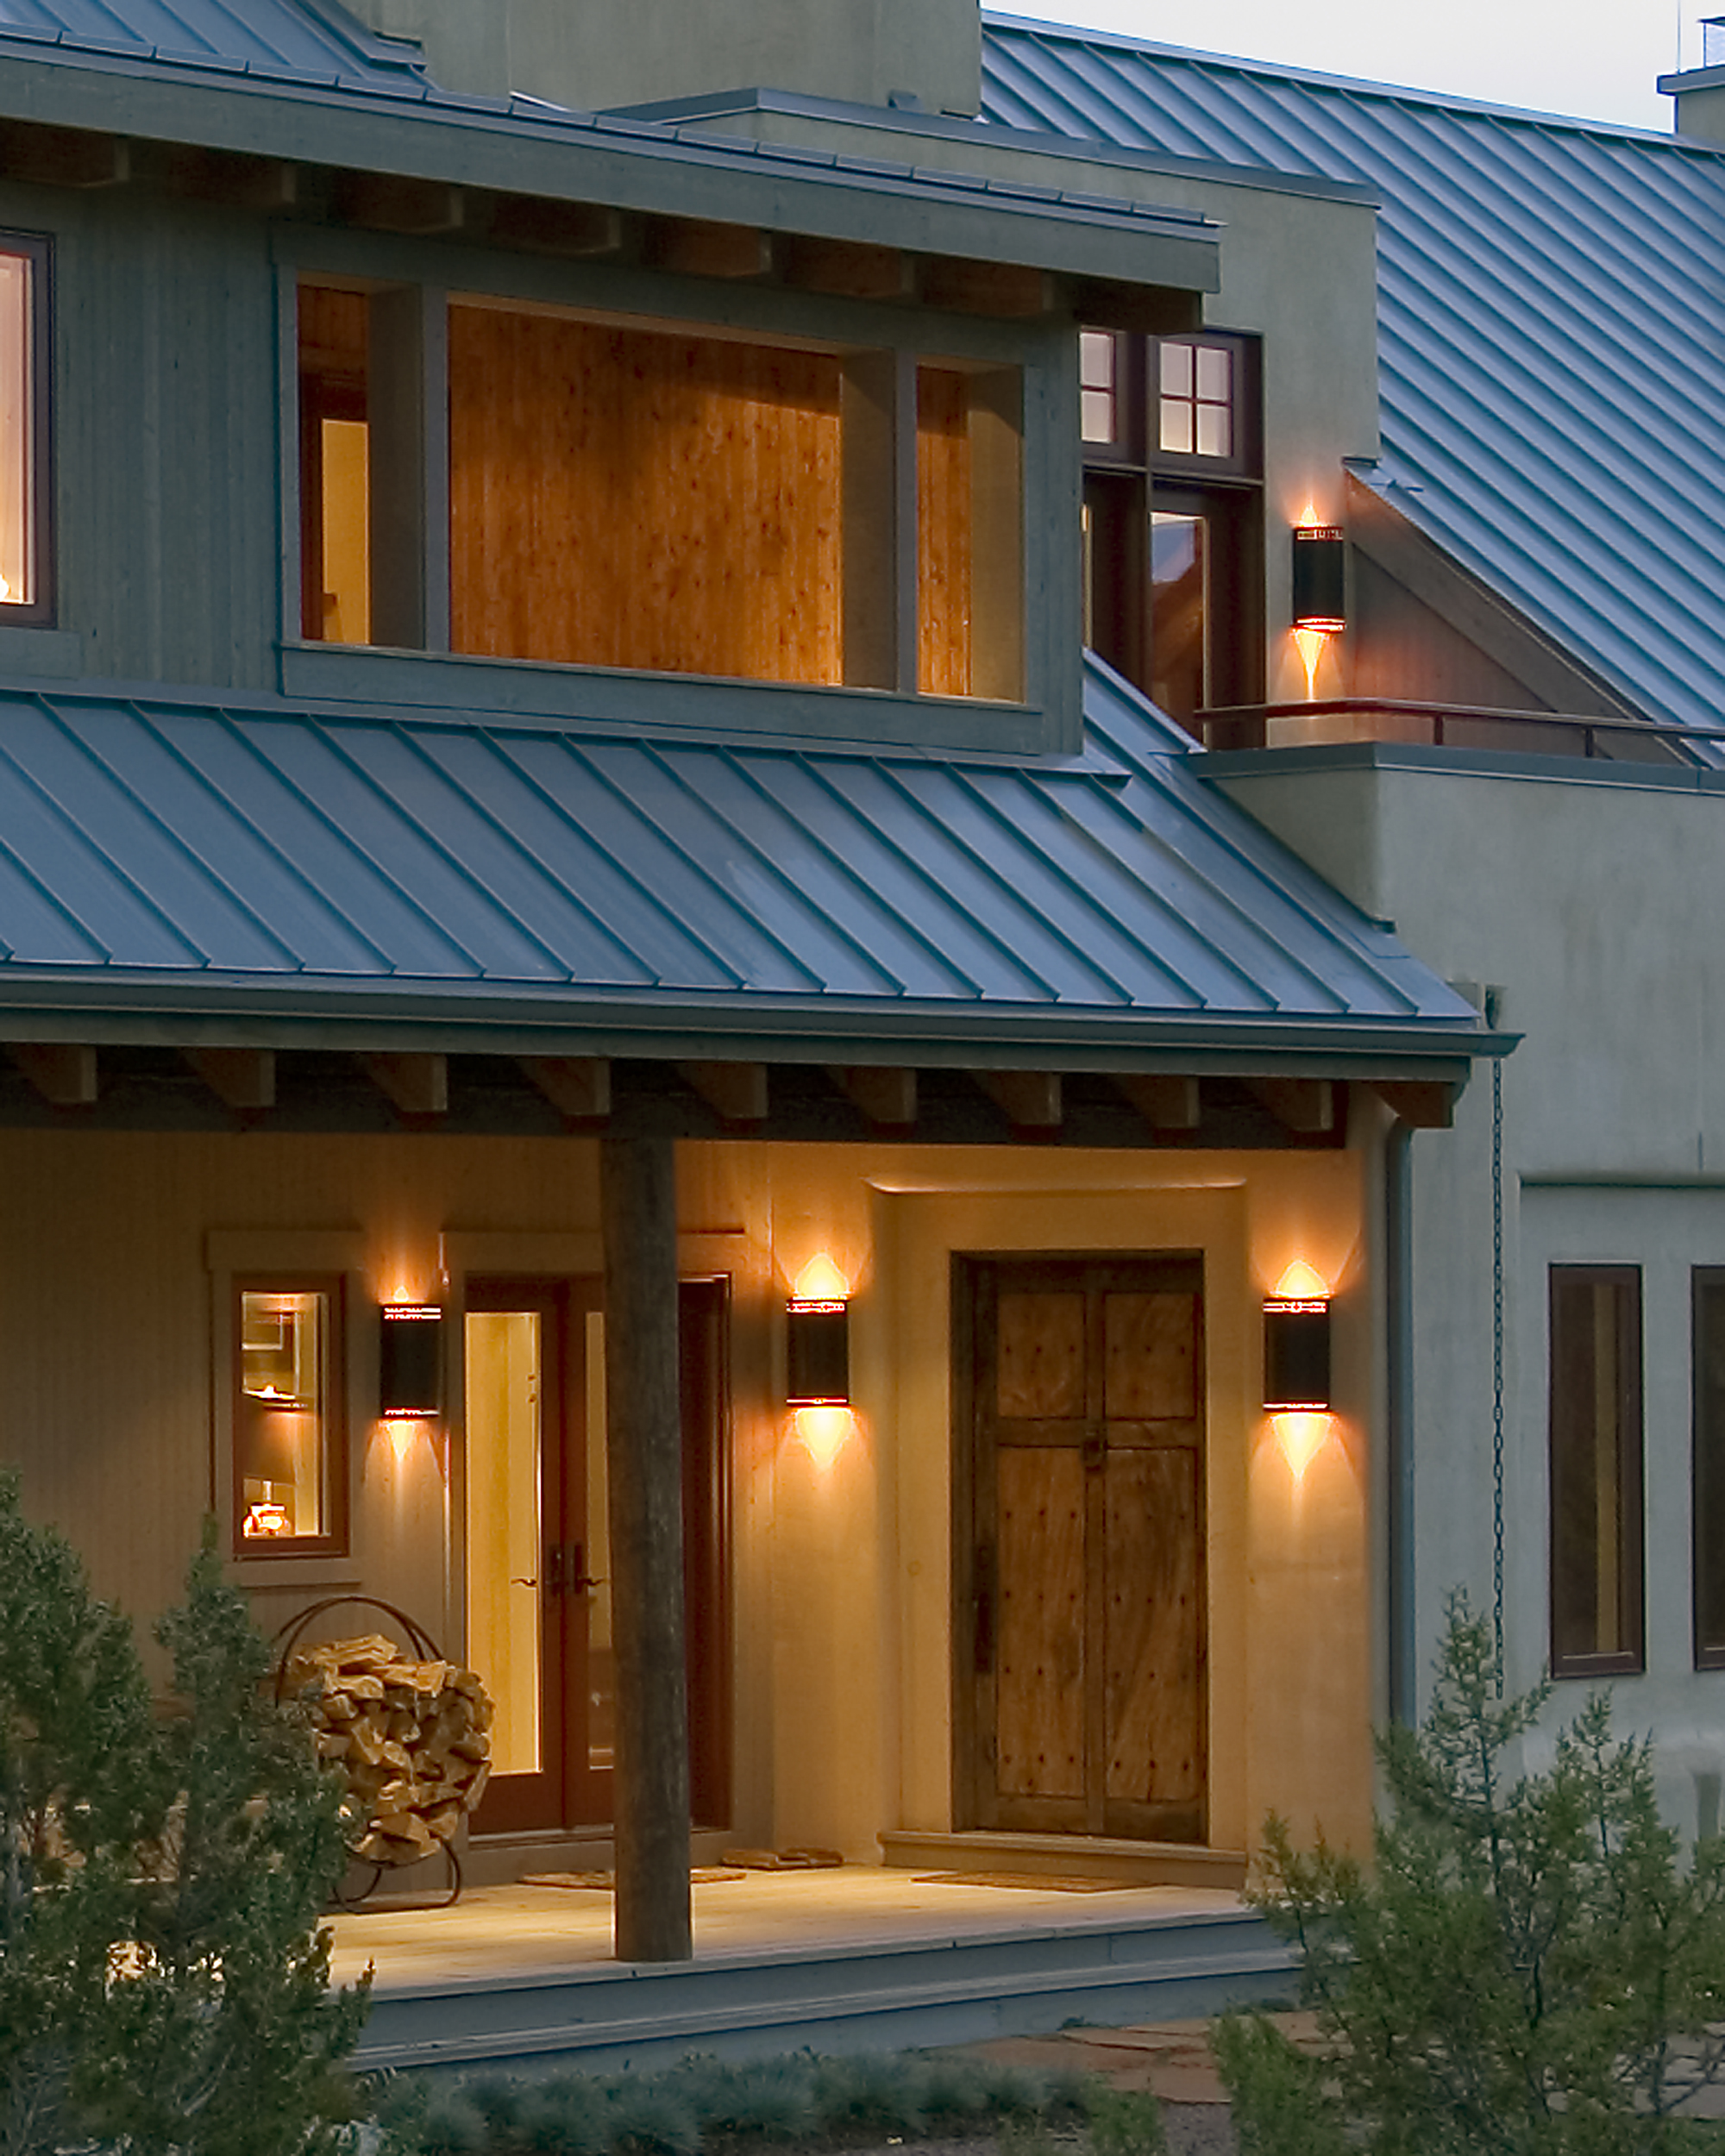 southern_colorado_modern_adobe_porch.jpg